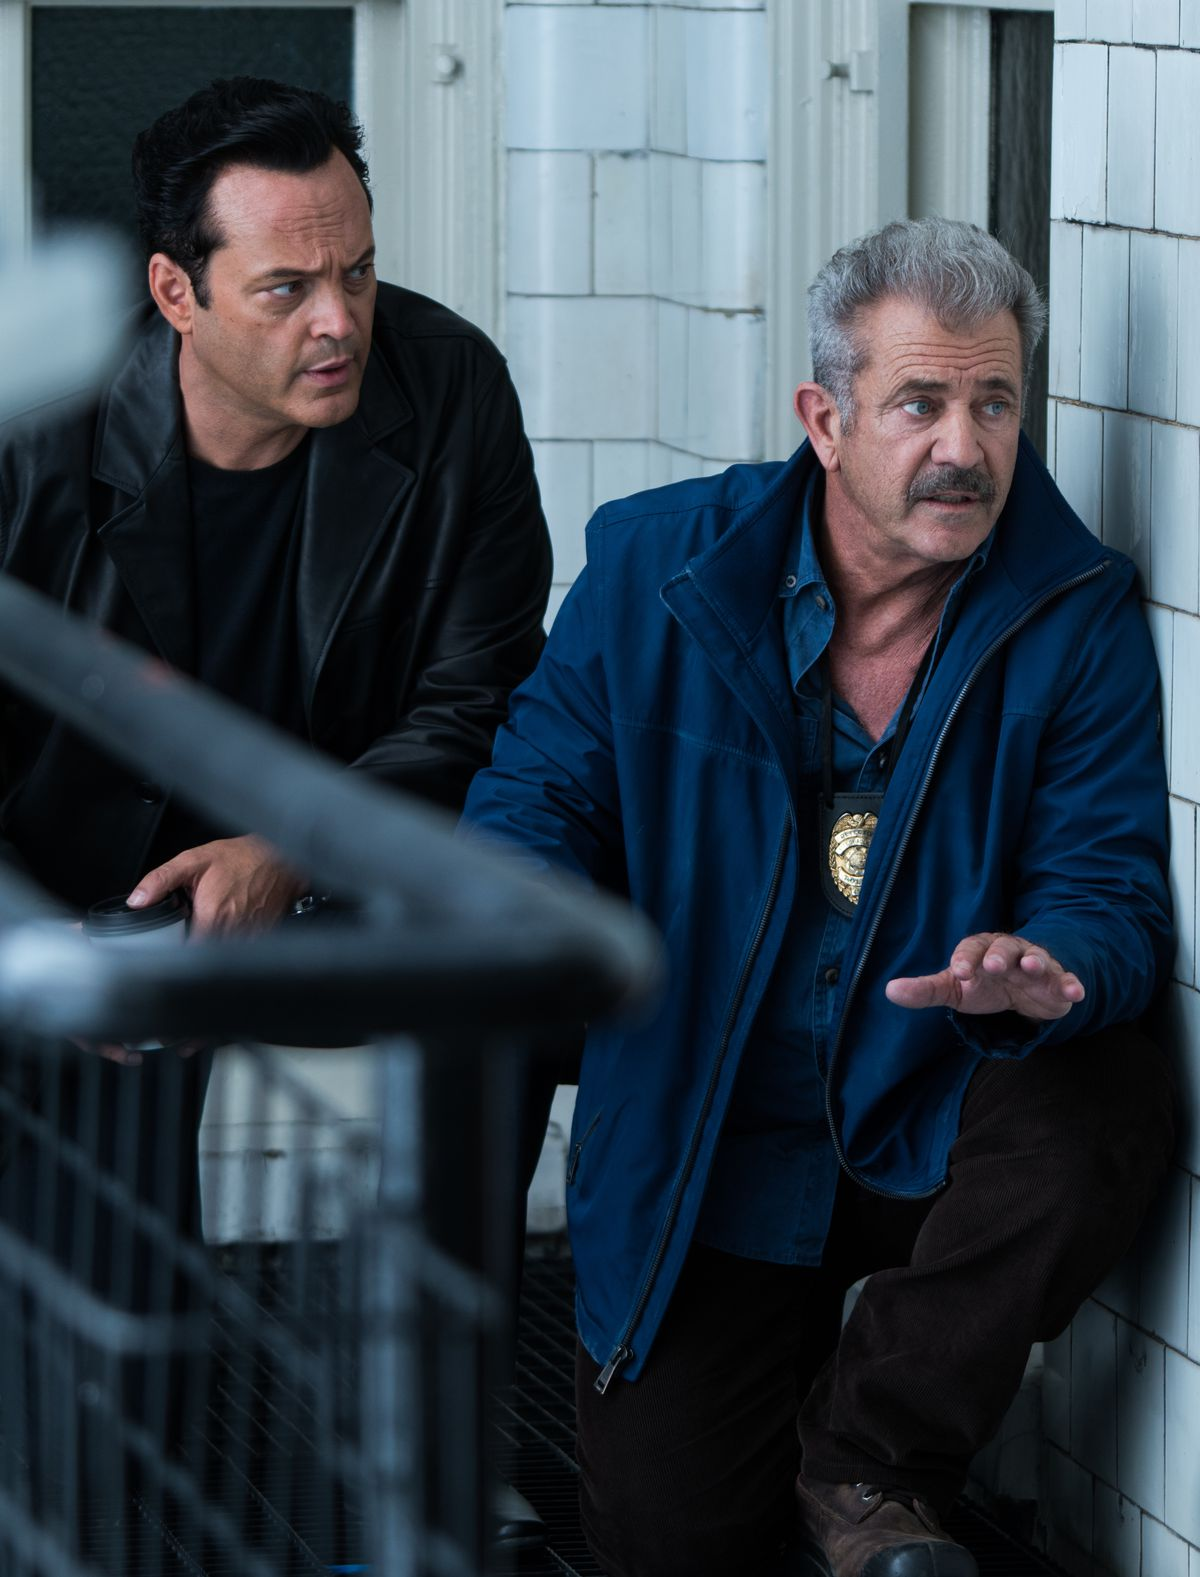 Dragged Across Concrete - Anthony and Brett about to apprehend a suspect